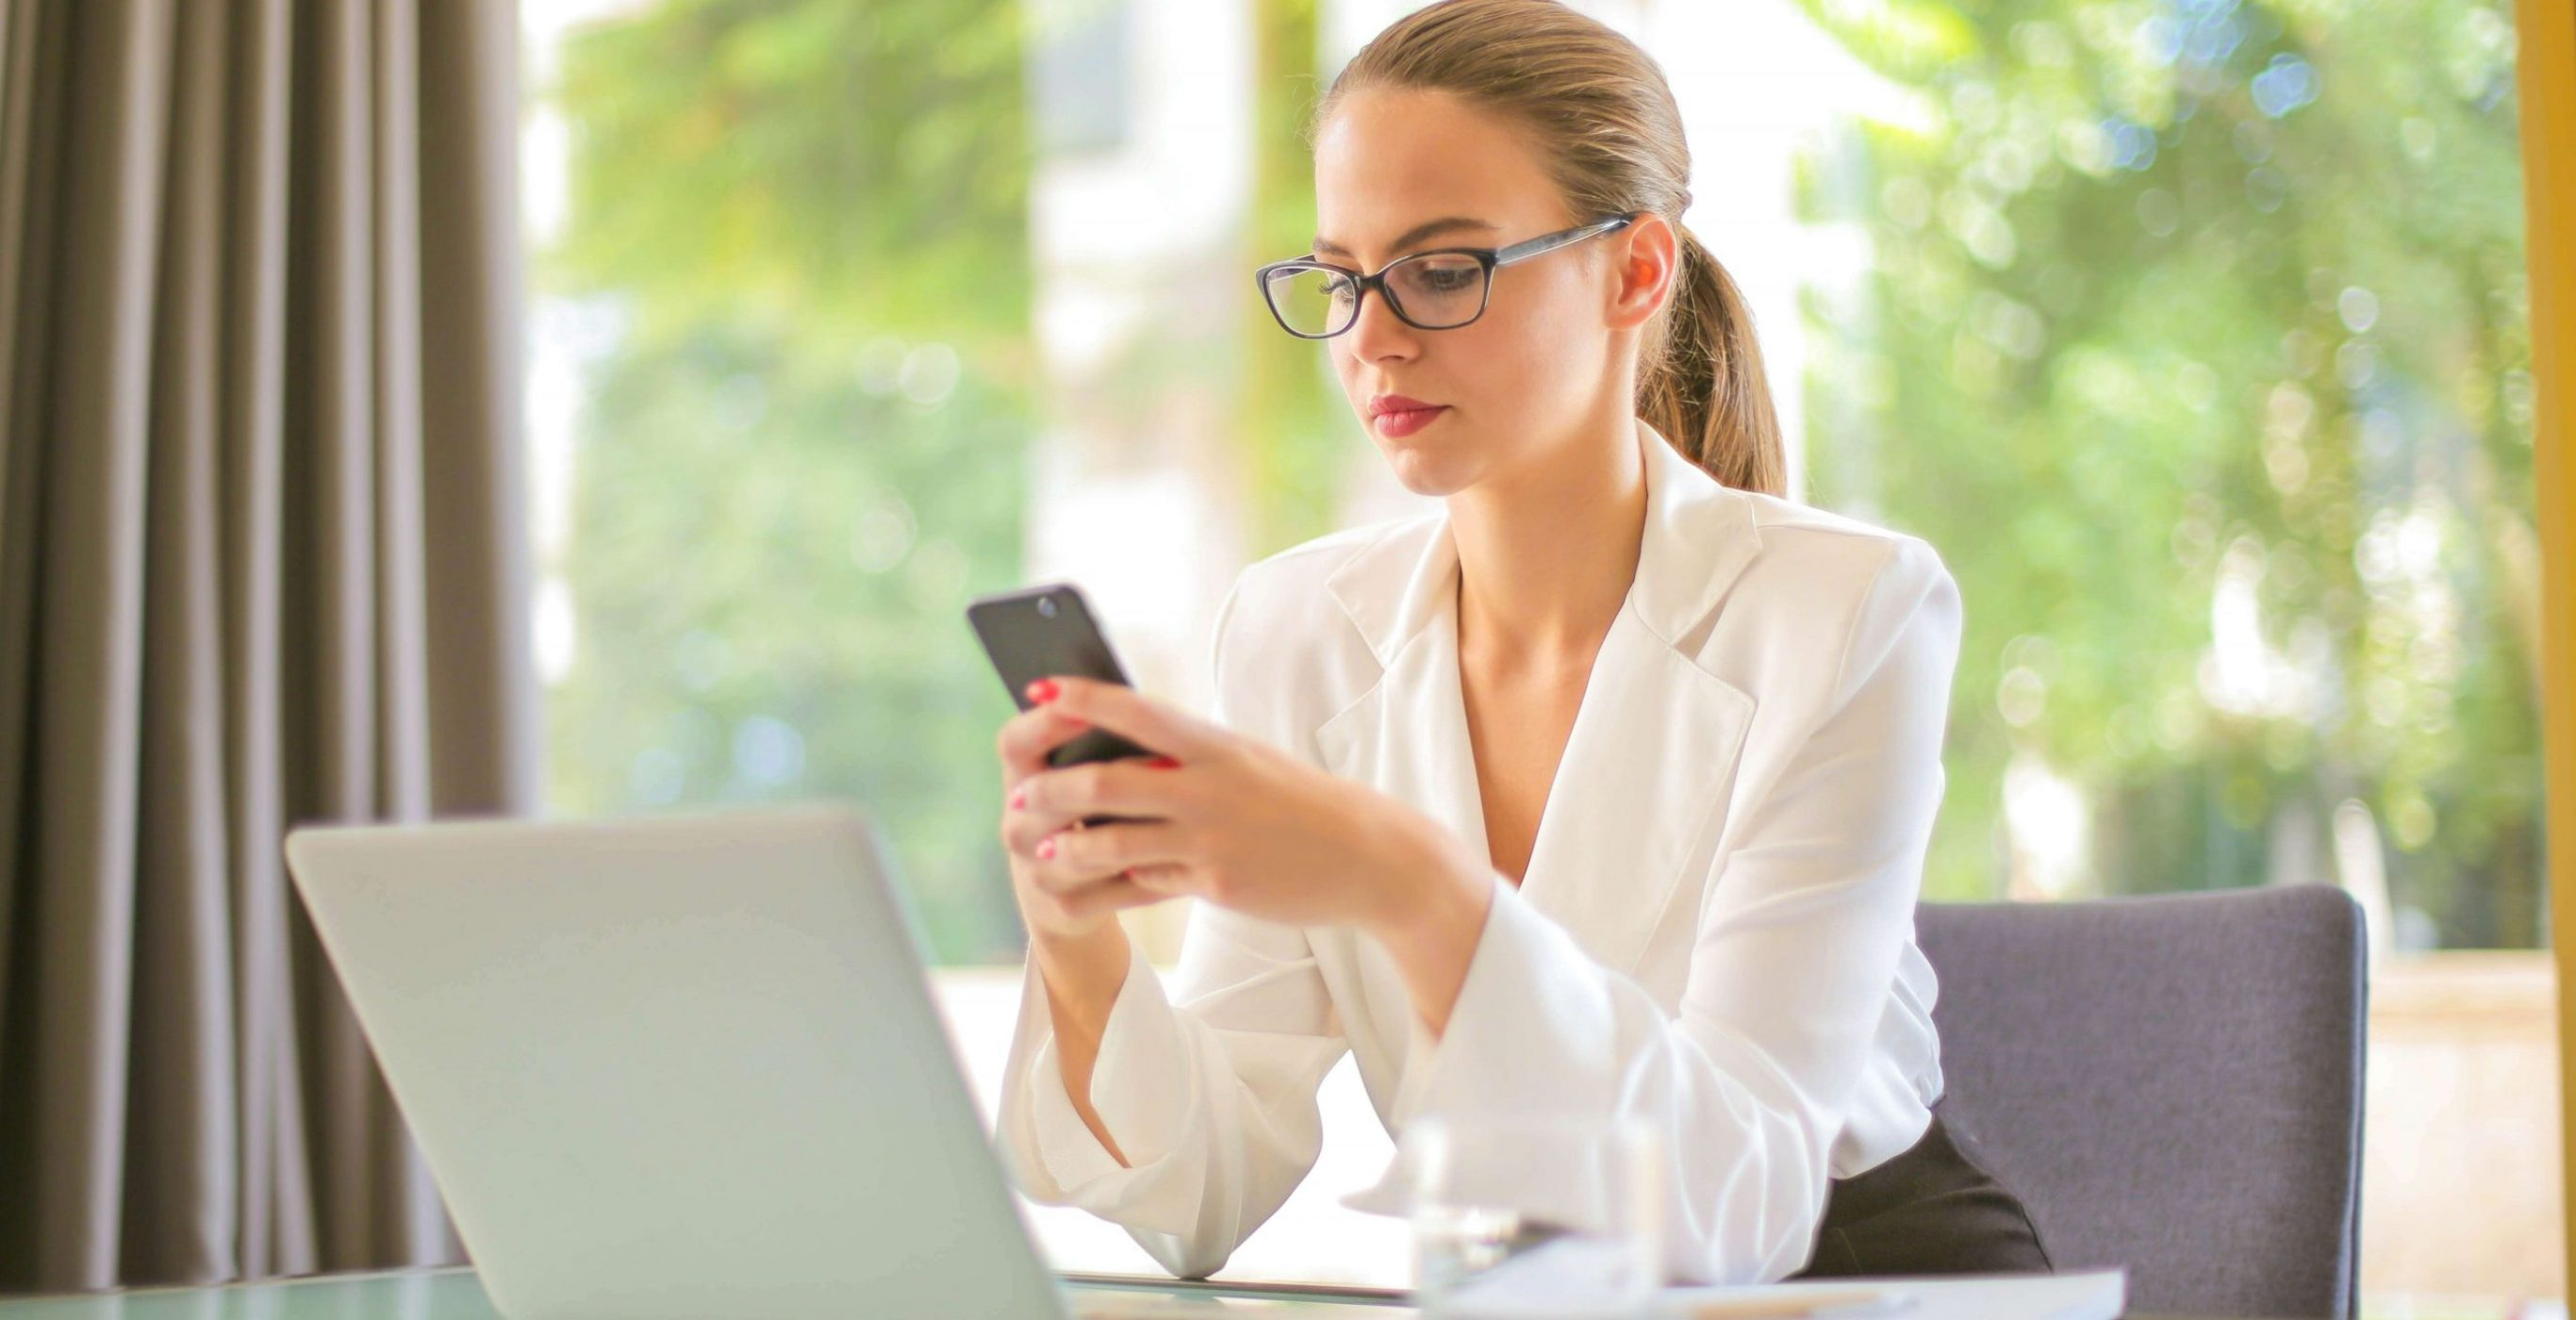 A woman in business clothing, staring at her phone, while seated in front of a desk with a laptop on it, used as the featured image for the article